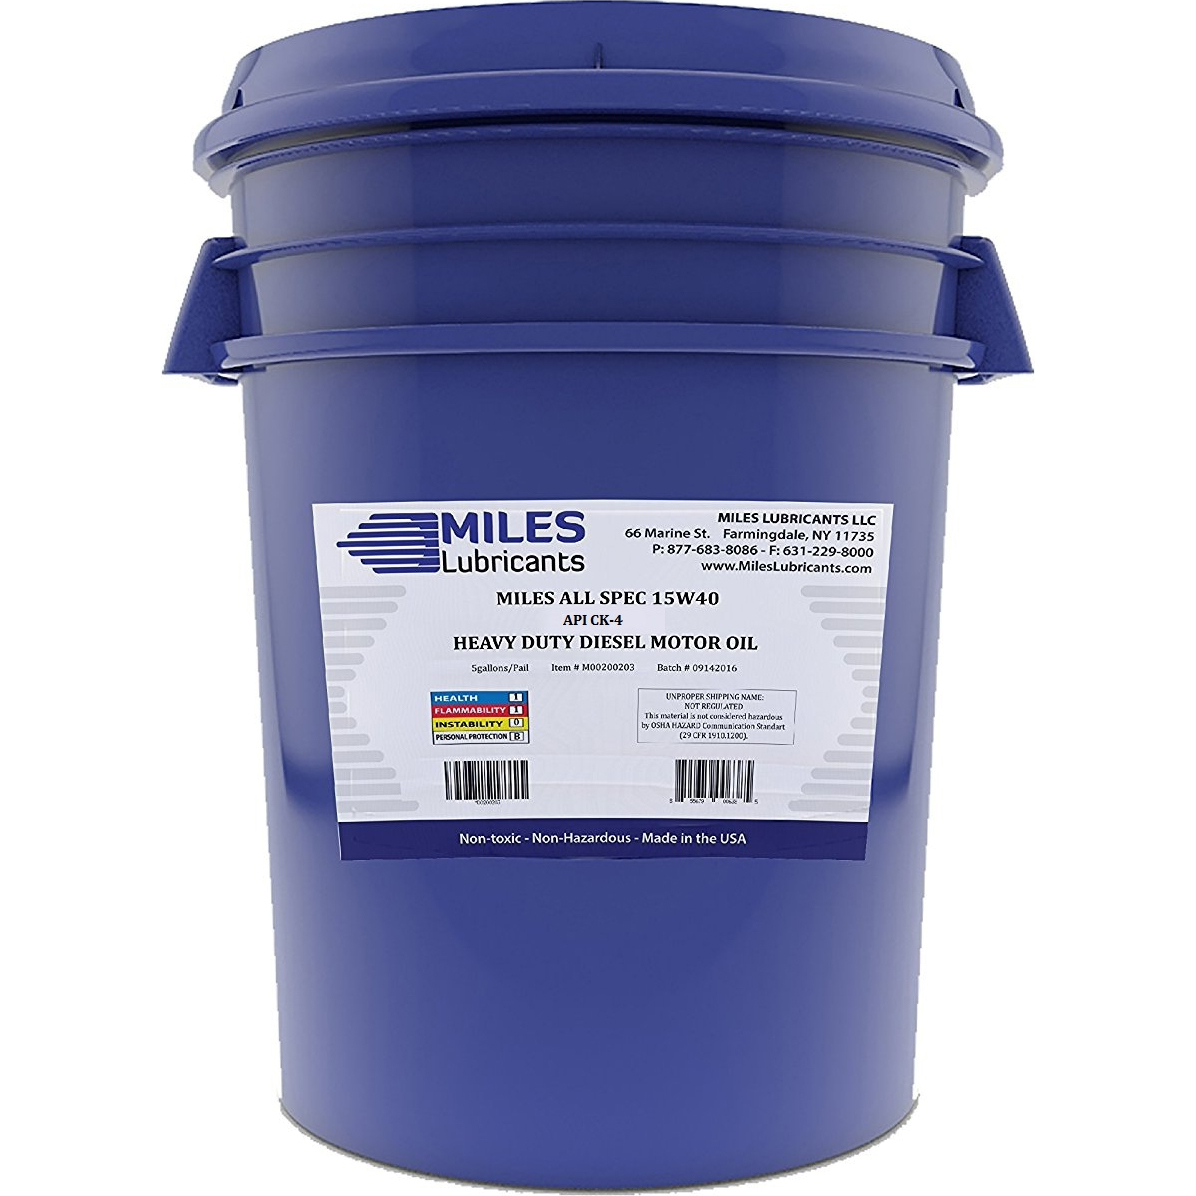 Miles All Spec 15W40 API CJ-4, Heavy Duty Diesel Motor Oil, 5-Gallon Pail